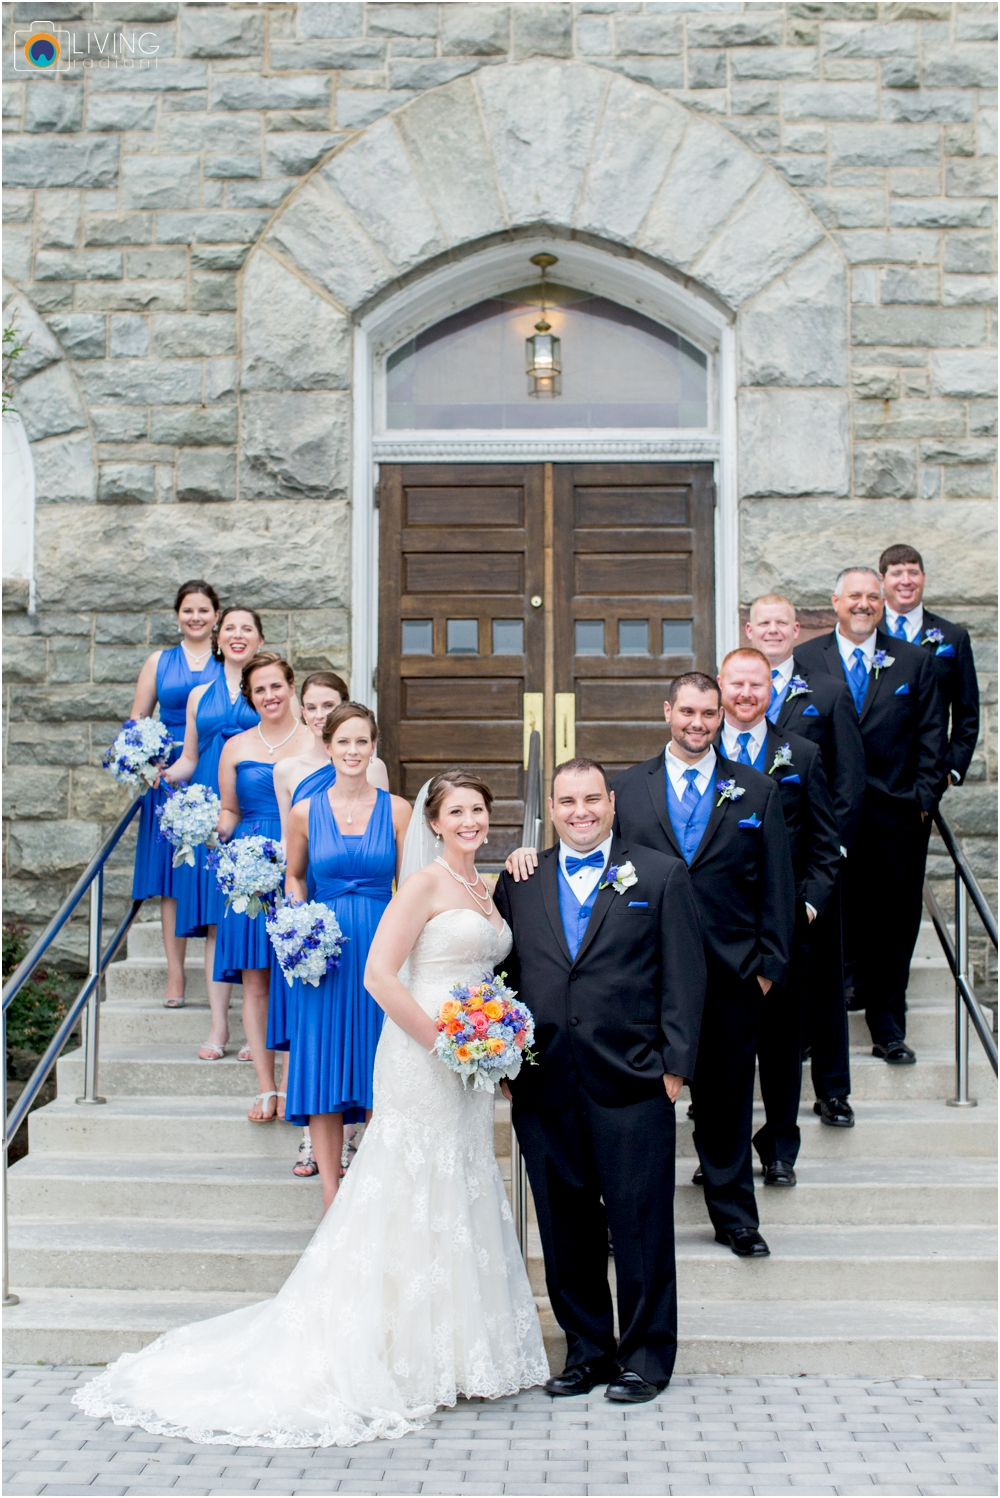 A Jarrettsville Church Wedding at Jarrettsville Gardens Photos by Living Radiant Photography